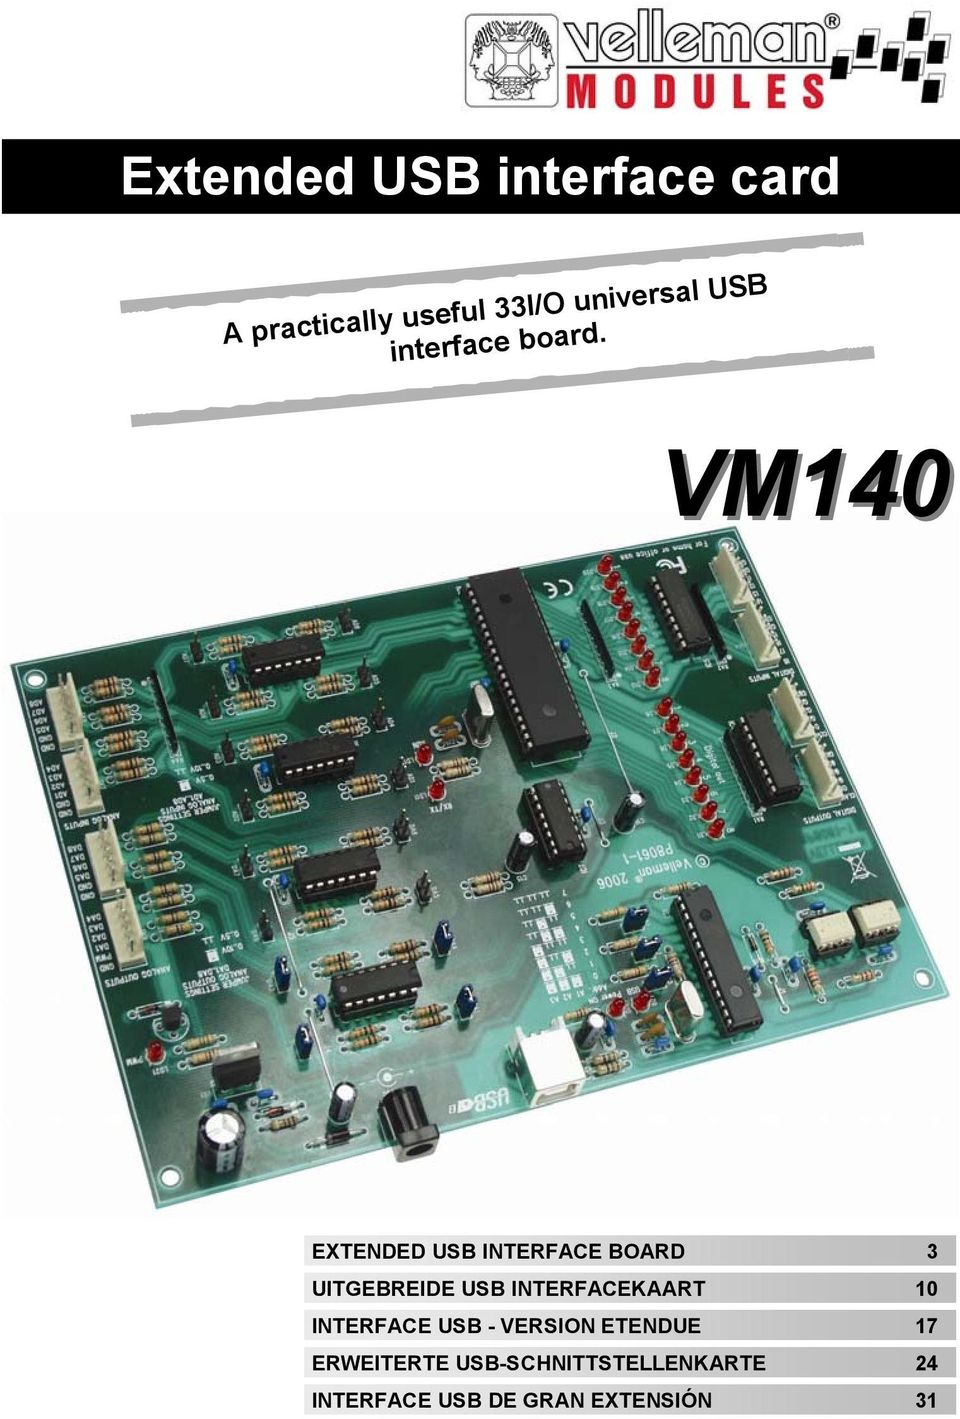 VM140 EXTENDED USB INTERFACE BOARD 3 UITGEBREIDE USB